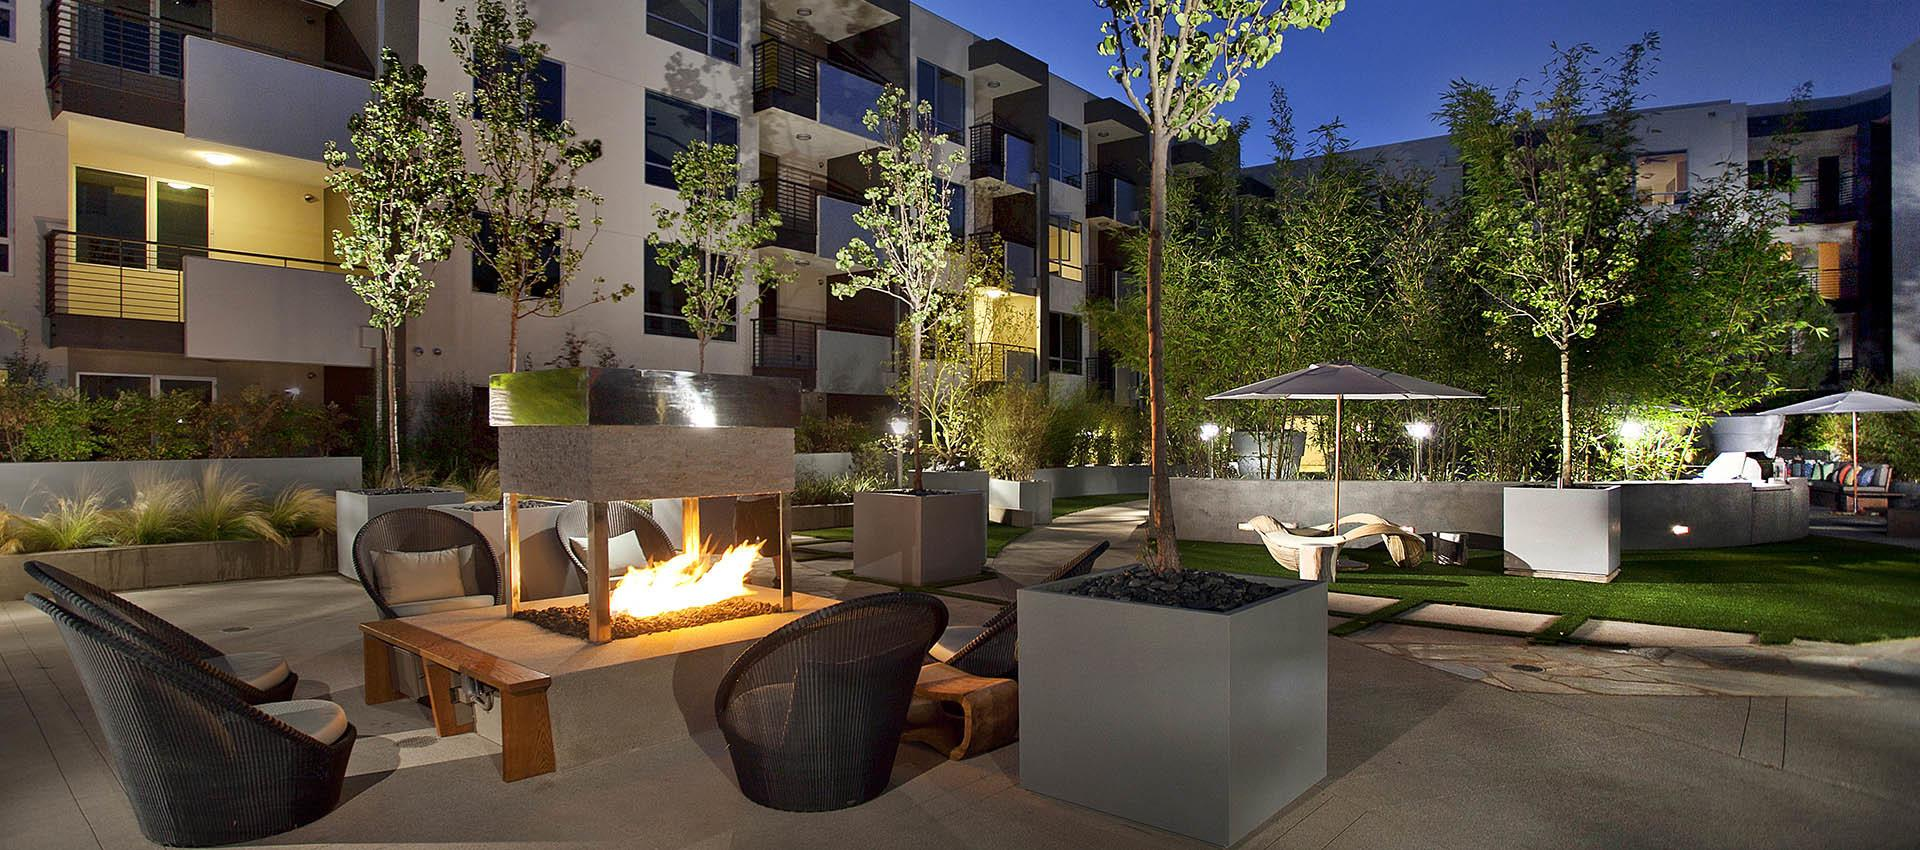 Outdoor Fireplace at apartments in Glendale, CA